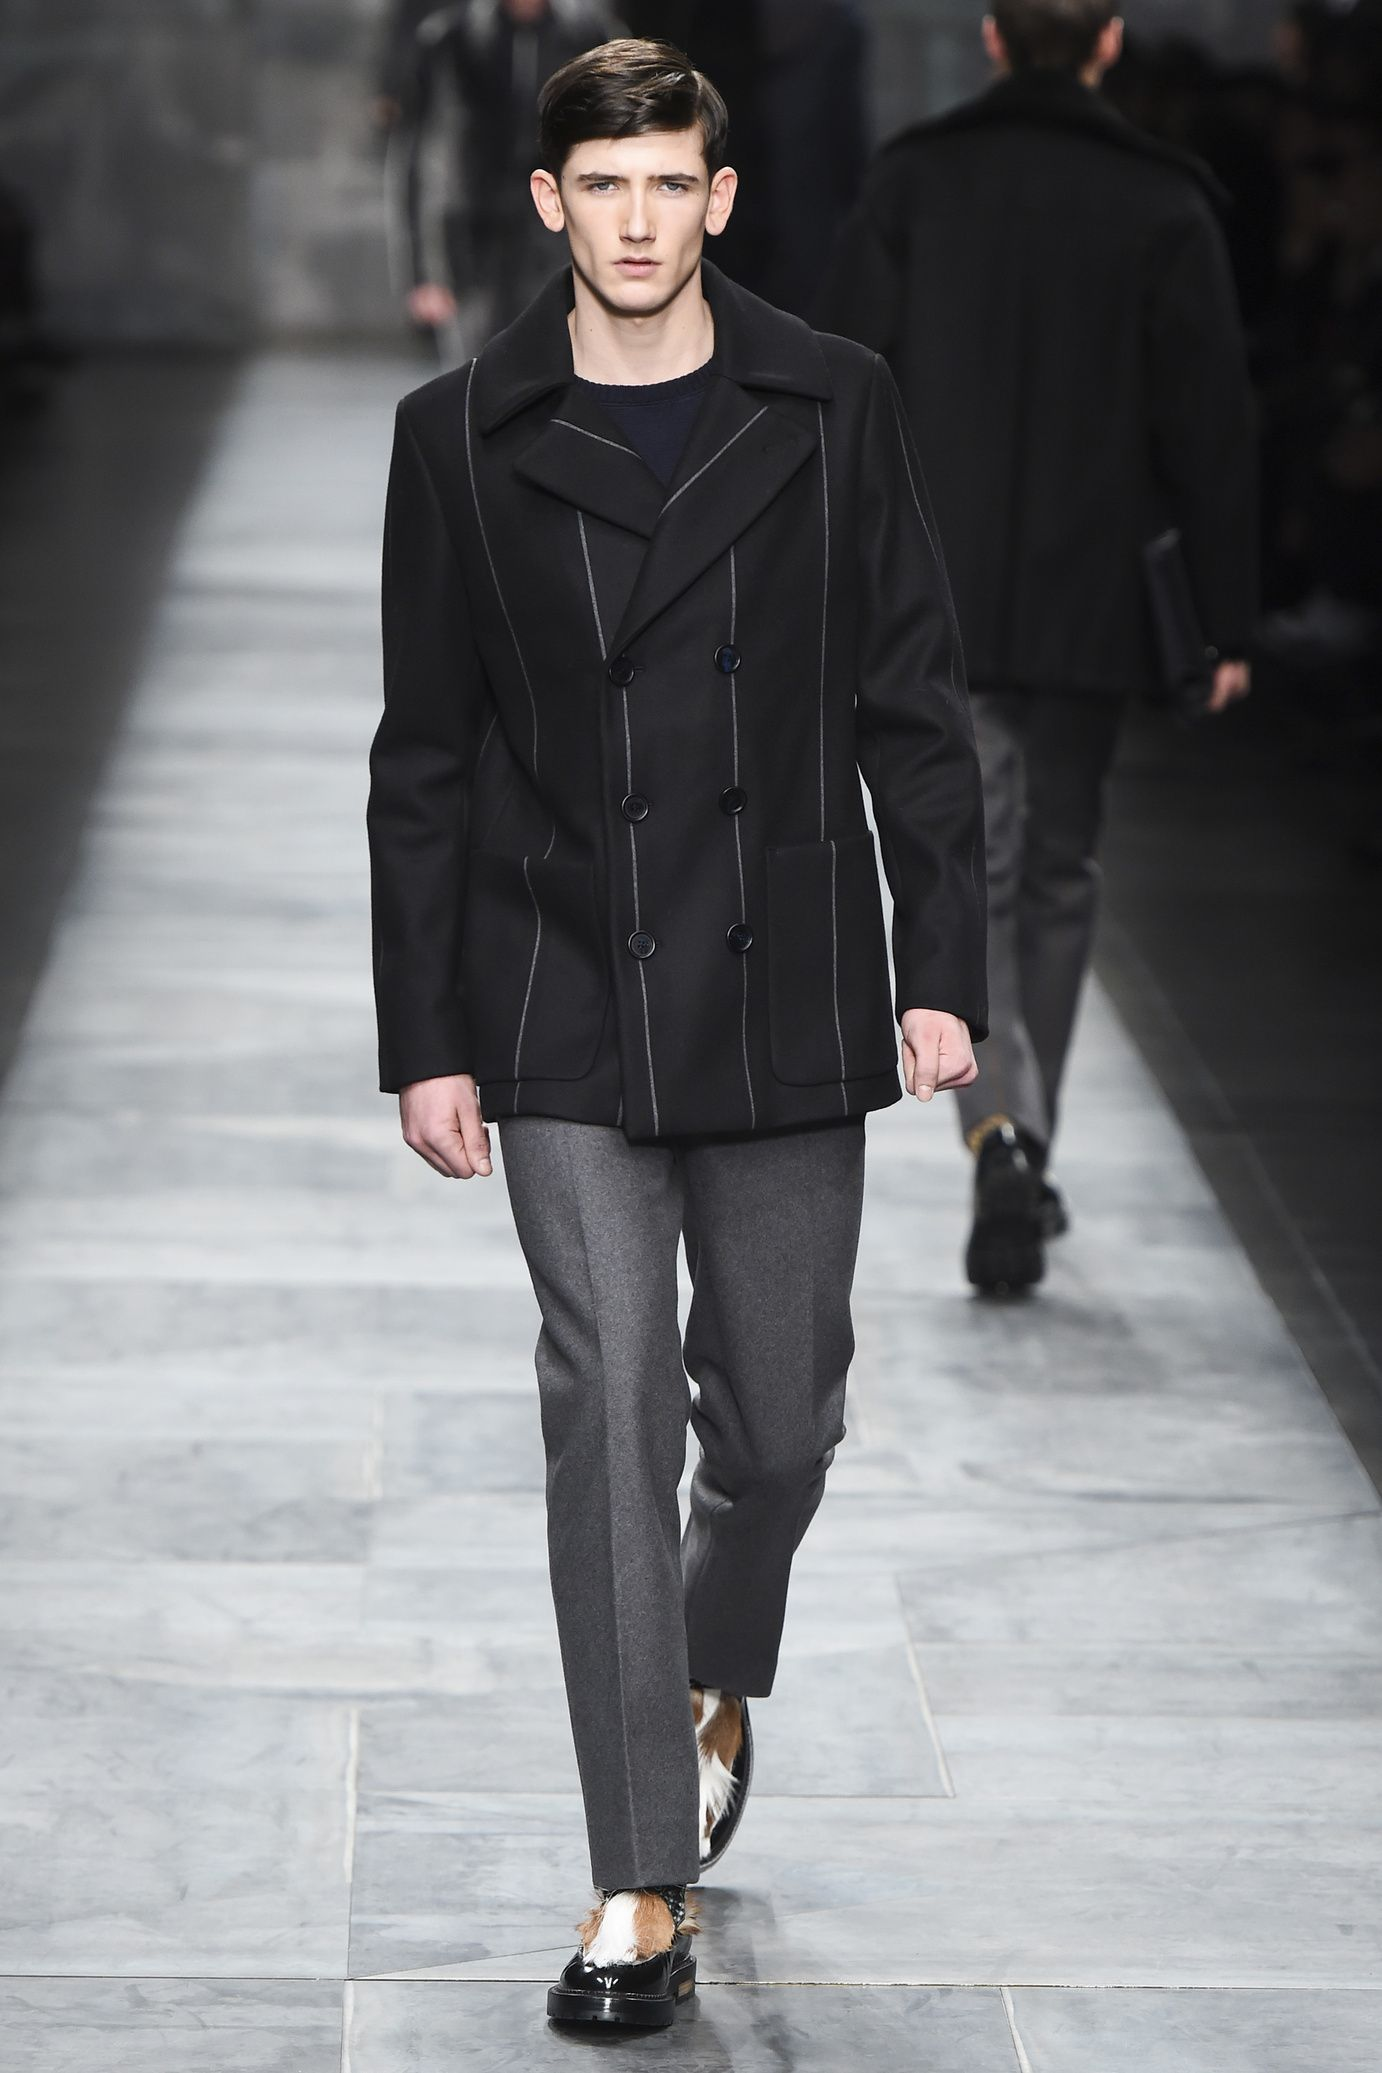 Fendi  menswear fall winter 2015-2016 Sfilata Di Moda 2a9e90ef1c8